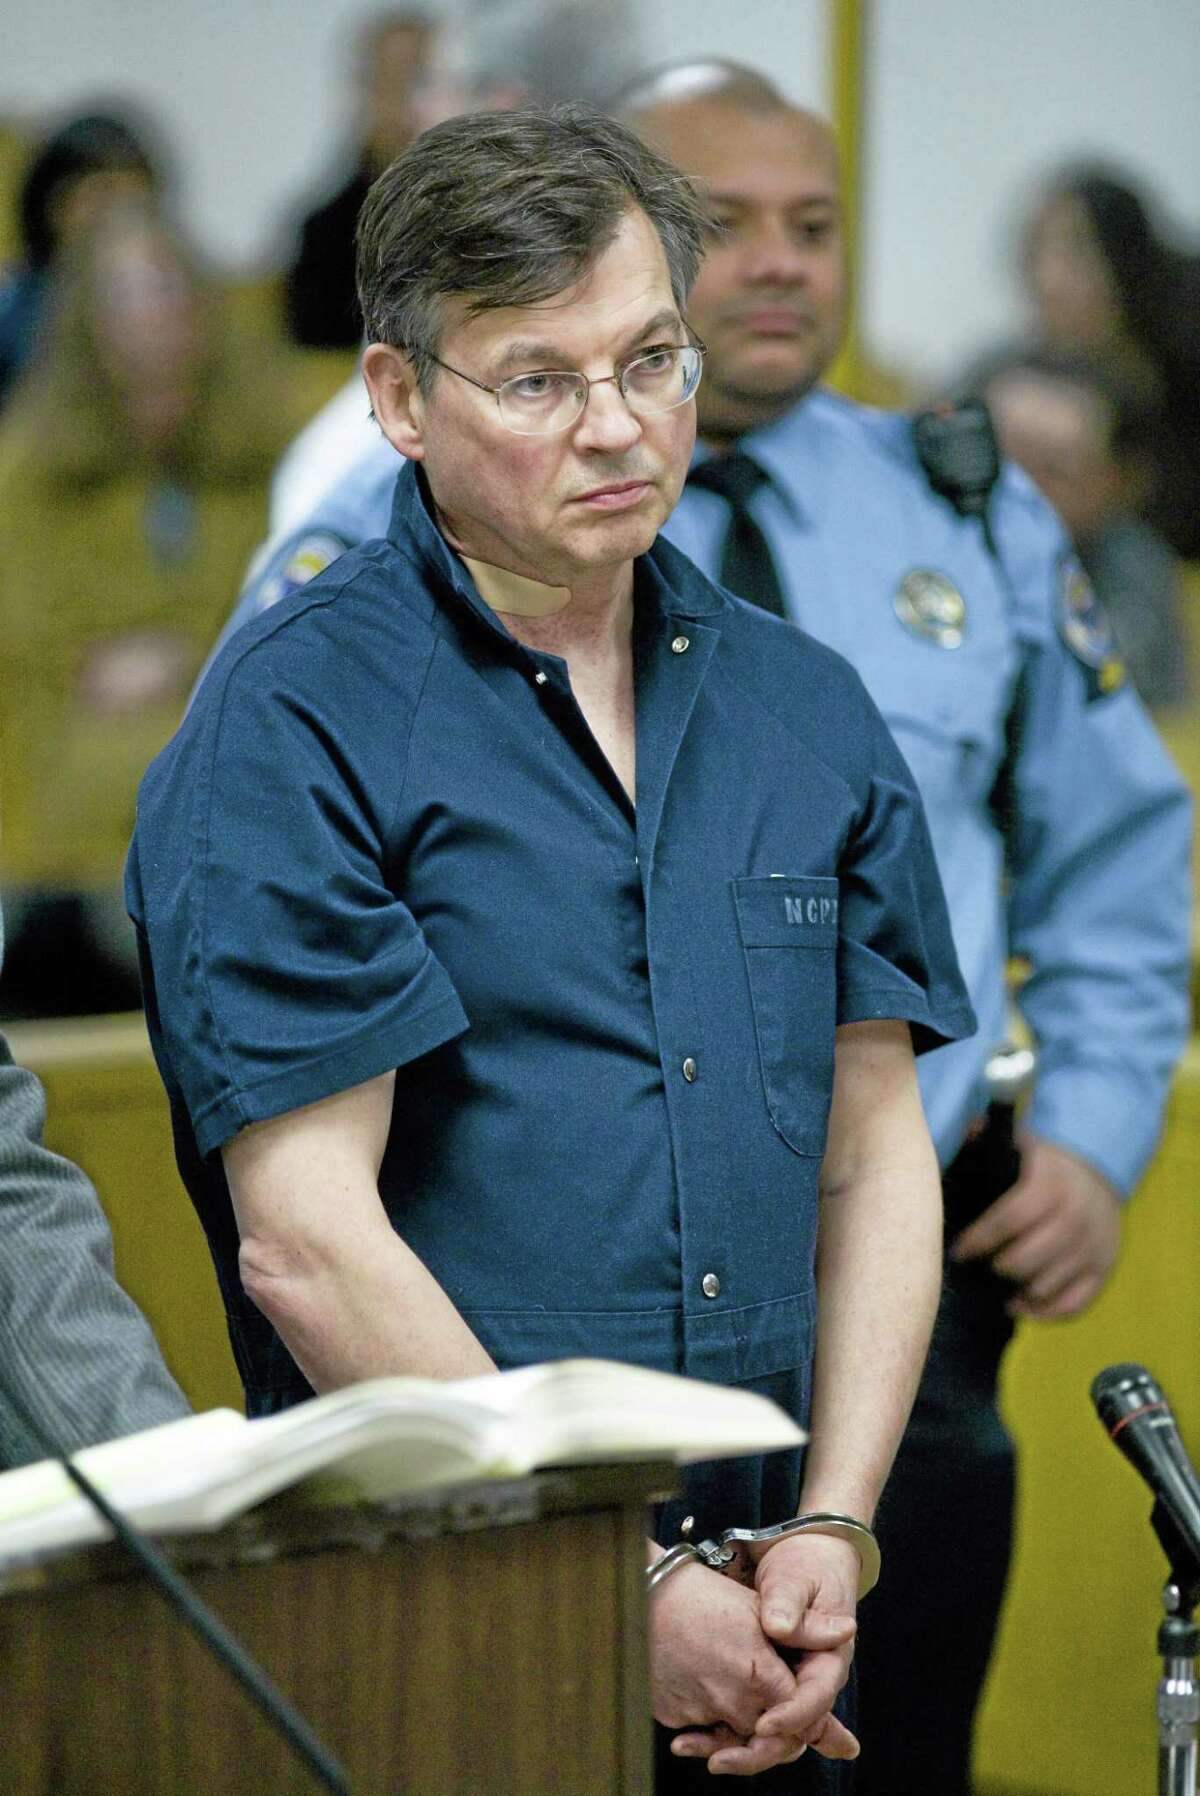 In this Jan. 7, 2010, file photo, John Michael Farren of New Canaan, Conn, is arraigned in state Superior Court in Norwalk, Conn. Farren, former White House lawyer in both Bush administrations was convicted Friday, July 11, 2014, of attempted murder and other charges in the beating of his wife at their Connecticut home four years ago.